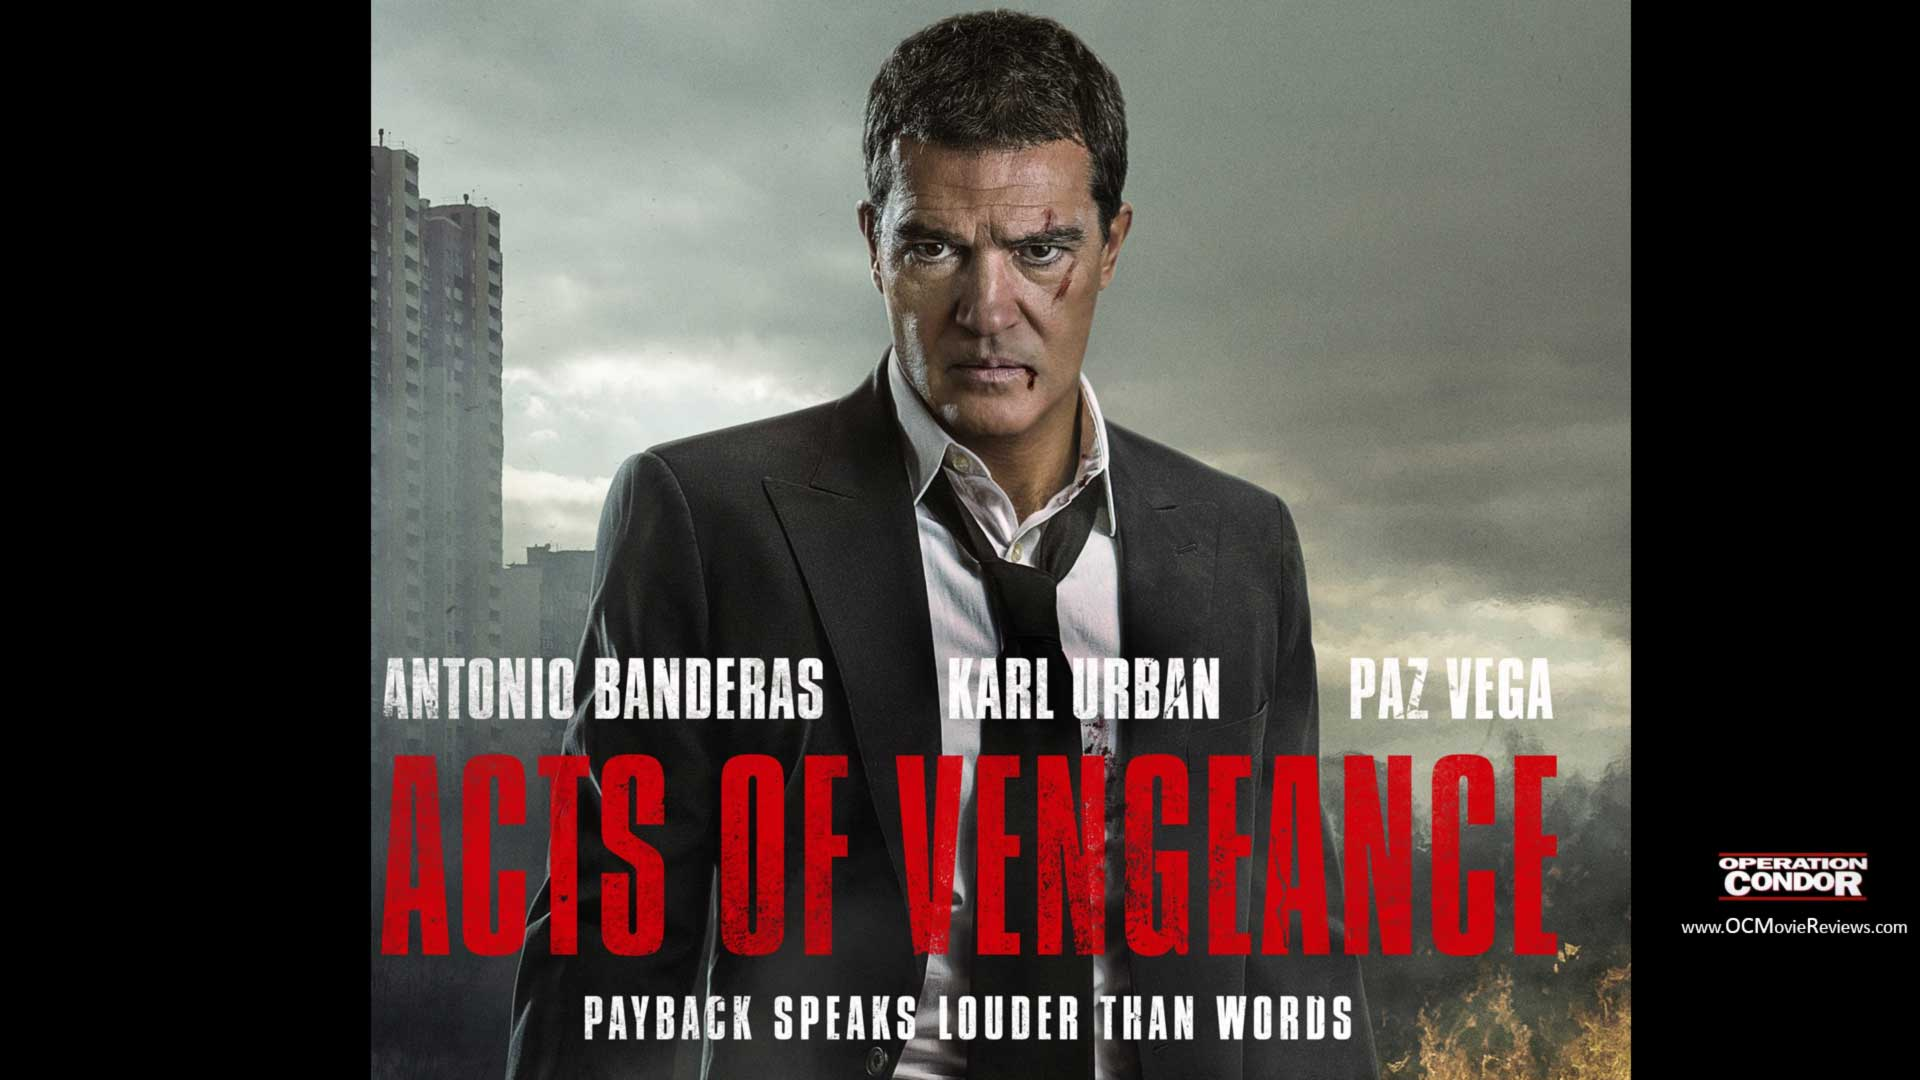 Acts Of Vengeance Review – Banderas Is Back In Action - OC Movie Reviews - Movie Reviews, Movie News, Documentary Reviews, Short Films, Short Film Reviews, Trailers, Movie Trailers, Interviews, film reviews, film news, hollywood, indie films, documentaries